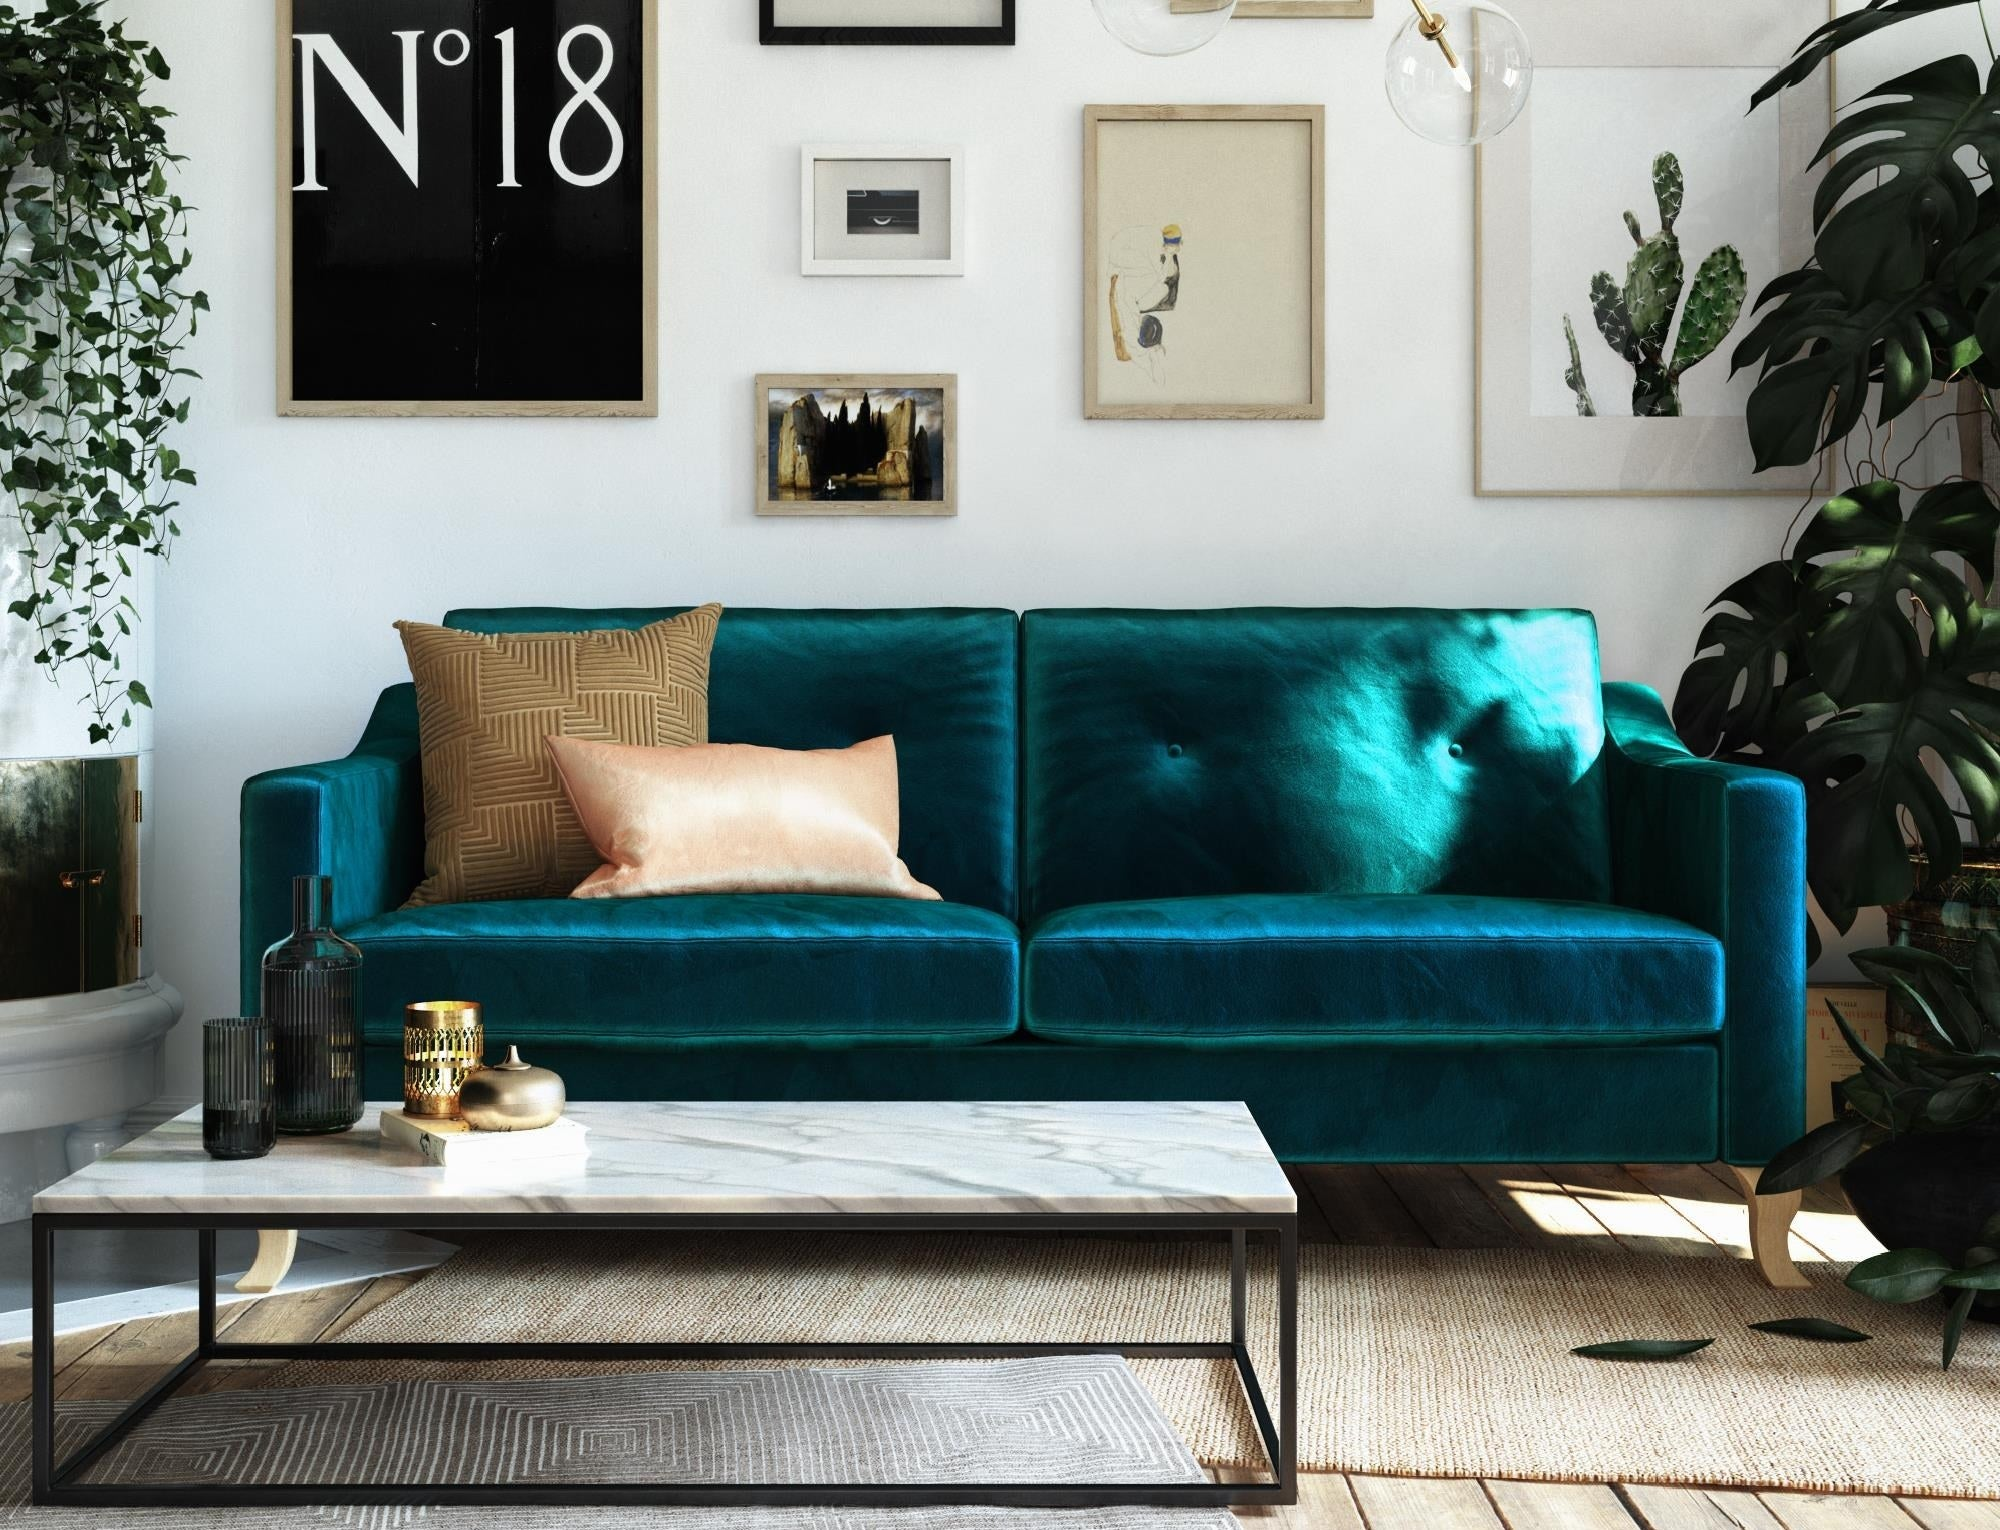 The green velvet couch with sloped arms in a living room